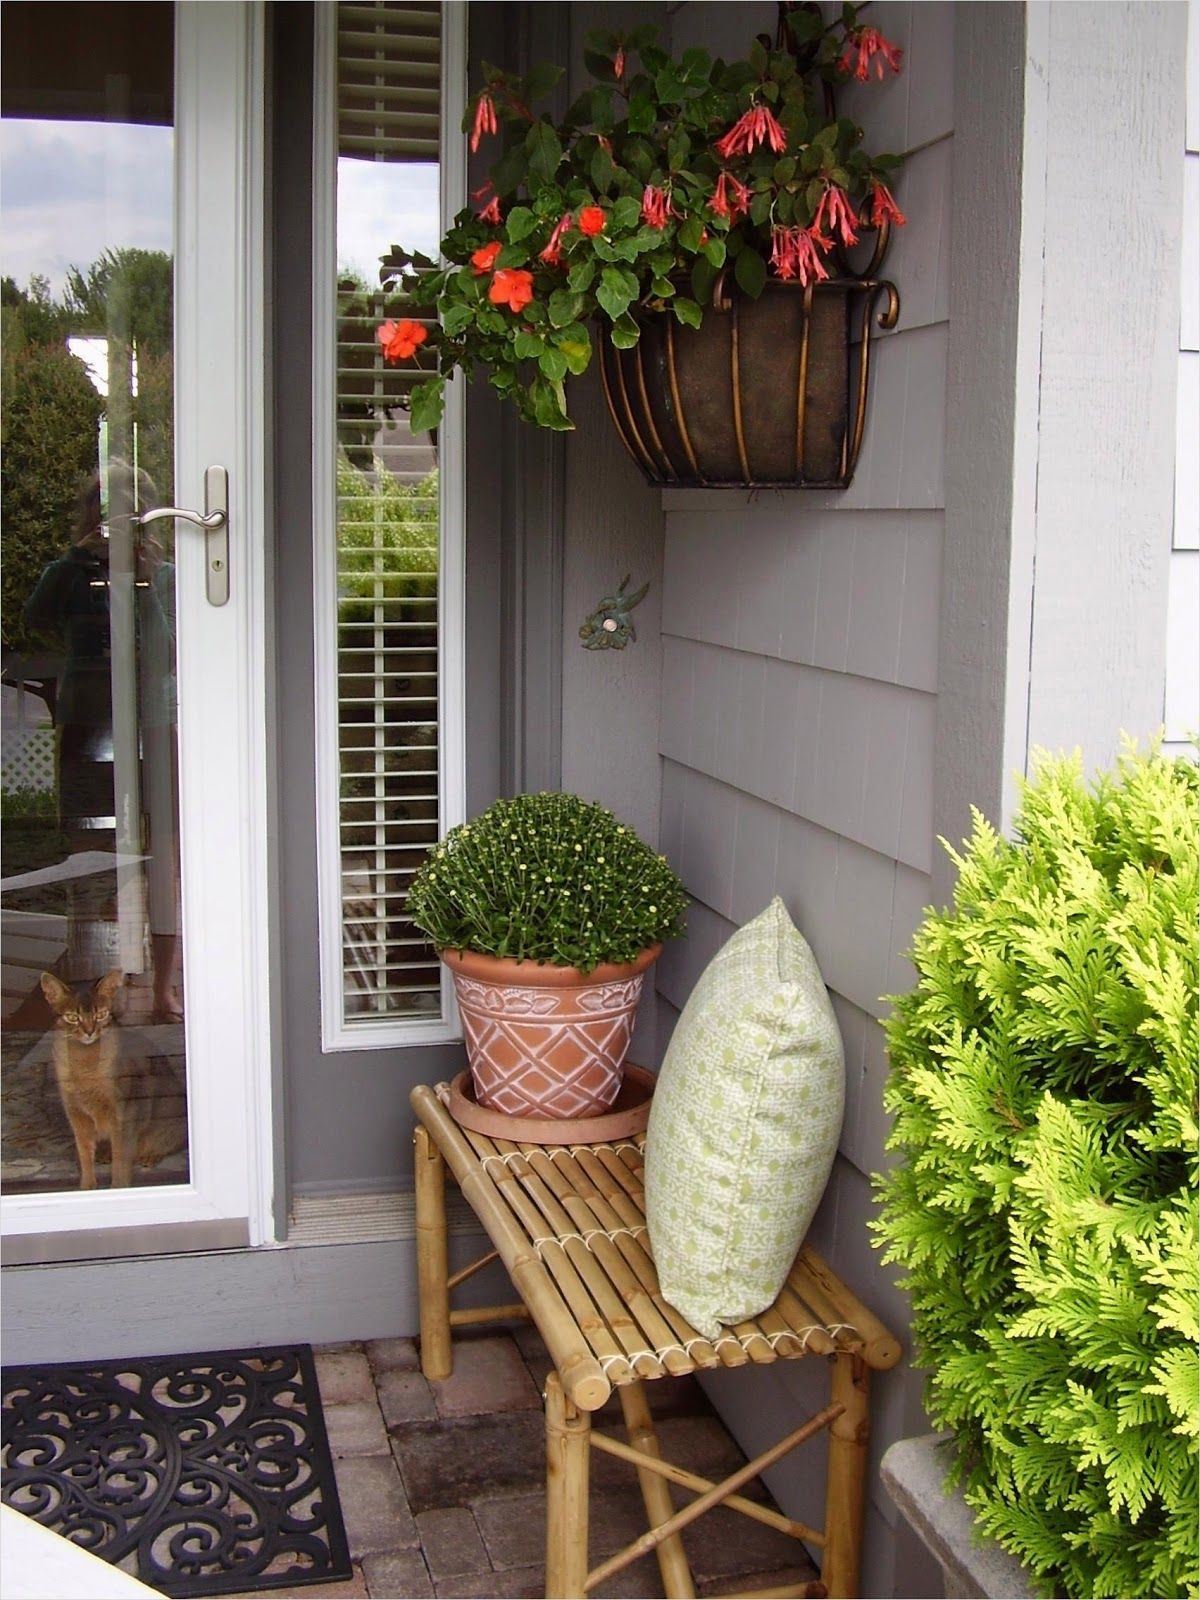 Porch Decor Ideas For A Small Stoop A Stroll Thru Life Porch Wall Decor Small Porch Decorating Front Porch Decorating